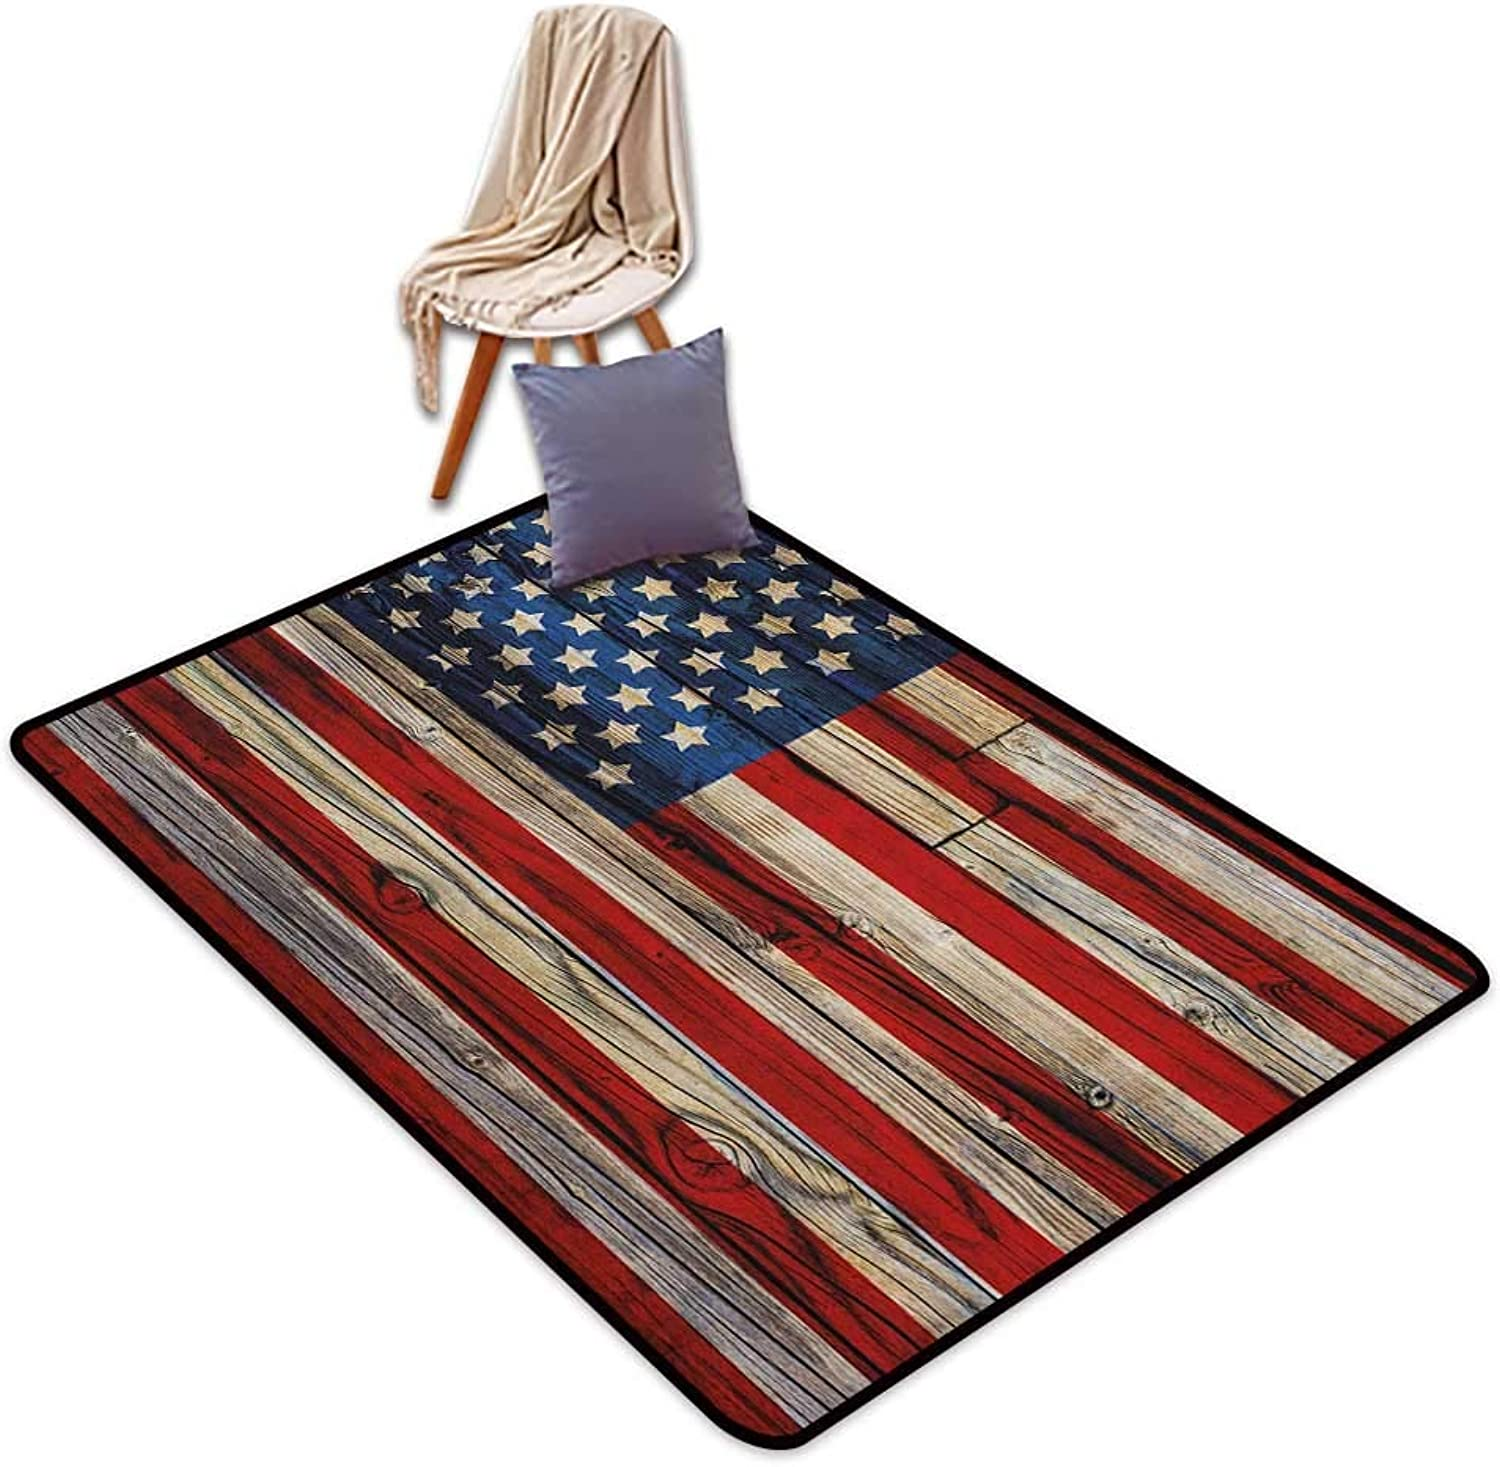 Girl Bedroom Rug 4th of July Wooden Planks Painted as United States Flag Patriotic Country Style Door Rug for Internal Anti-Slip Rug W6'xL7'